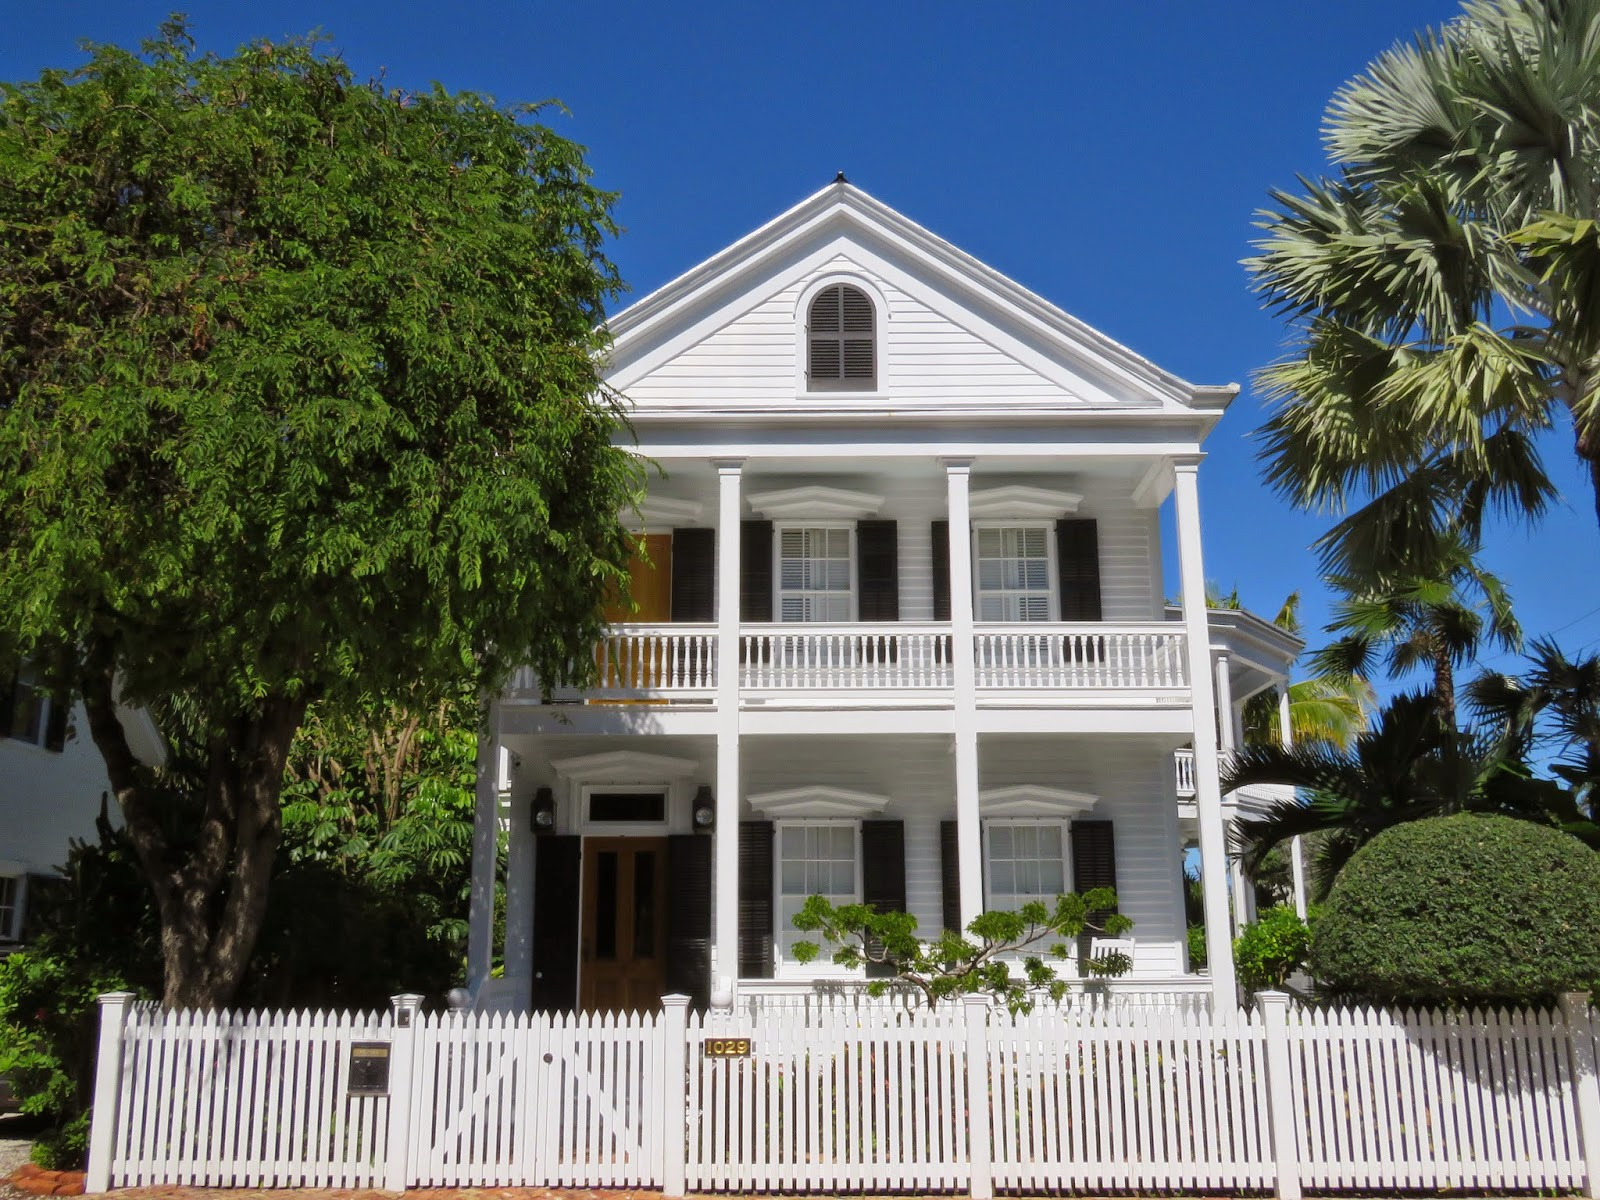 Key west vacation and visit guide for Most beautiful homes in florida